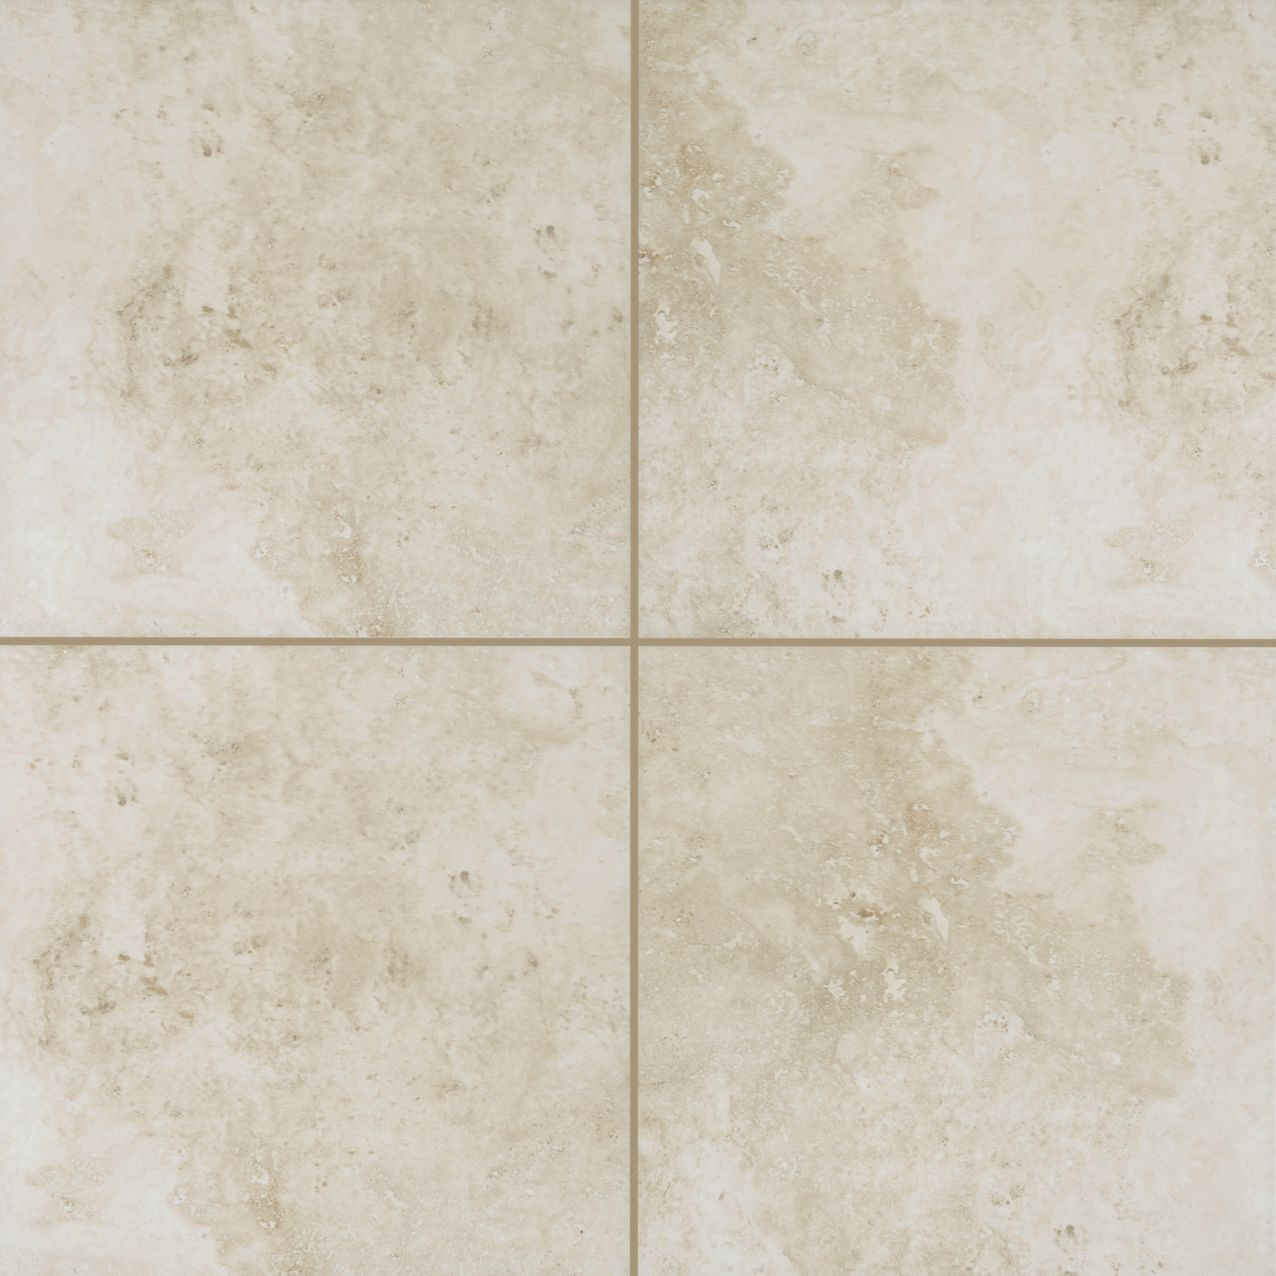 CeramicPorcelainTile Caretto T821F-CO01 Blanc